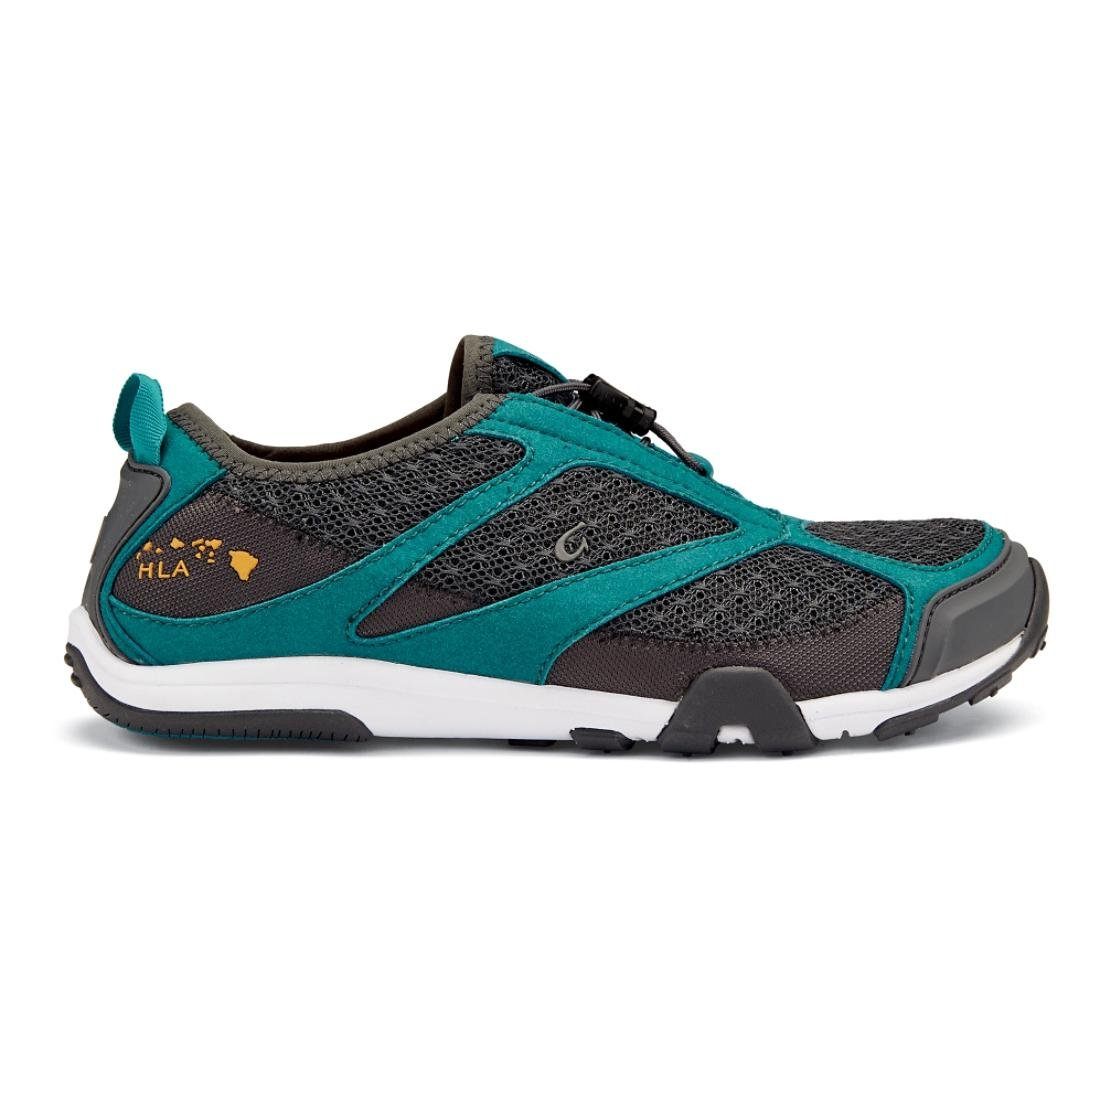 Olukai Eleuトレーナー – Women 's B010EAVM70 10 B(M) US|Dark Shadow / Teal Dark Shadow / Teal 10 B(M) US